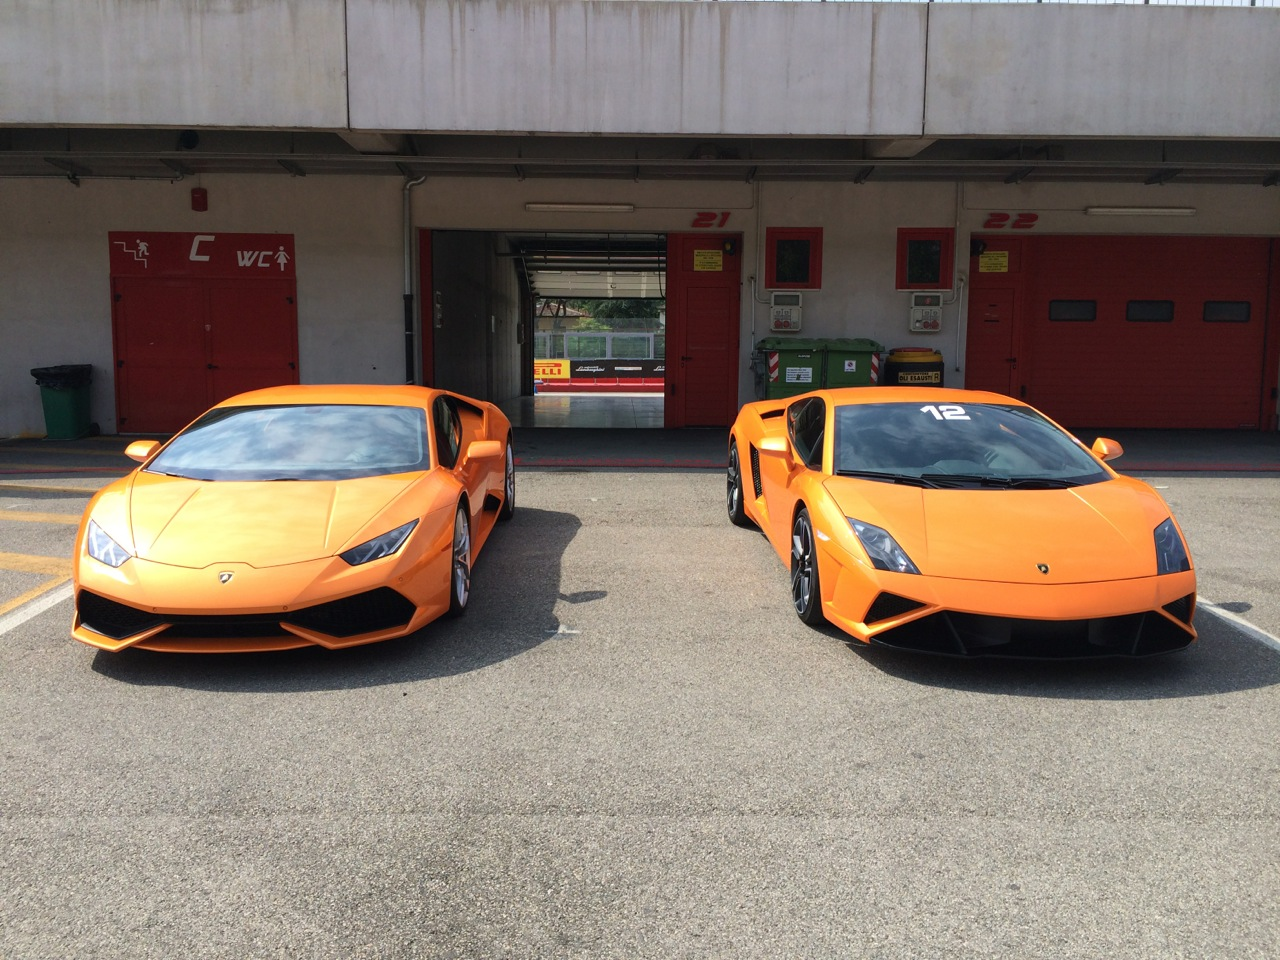 2014 Lamborghini Huracan And 2014 Lamborghini Gallardo LP560 4 Final  Edition In Arancio Borealis